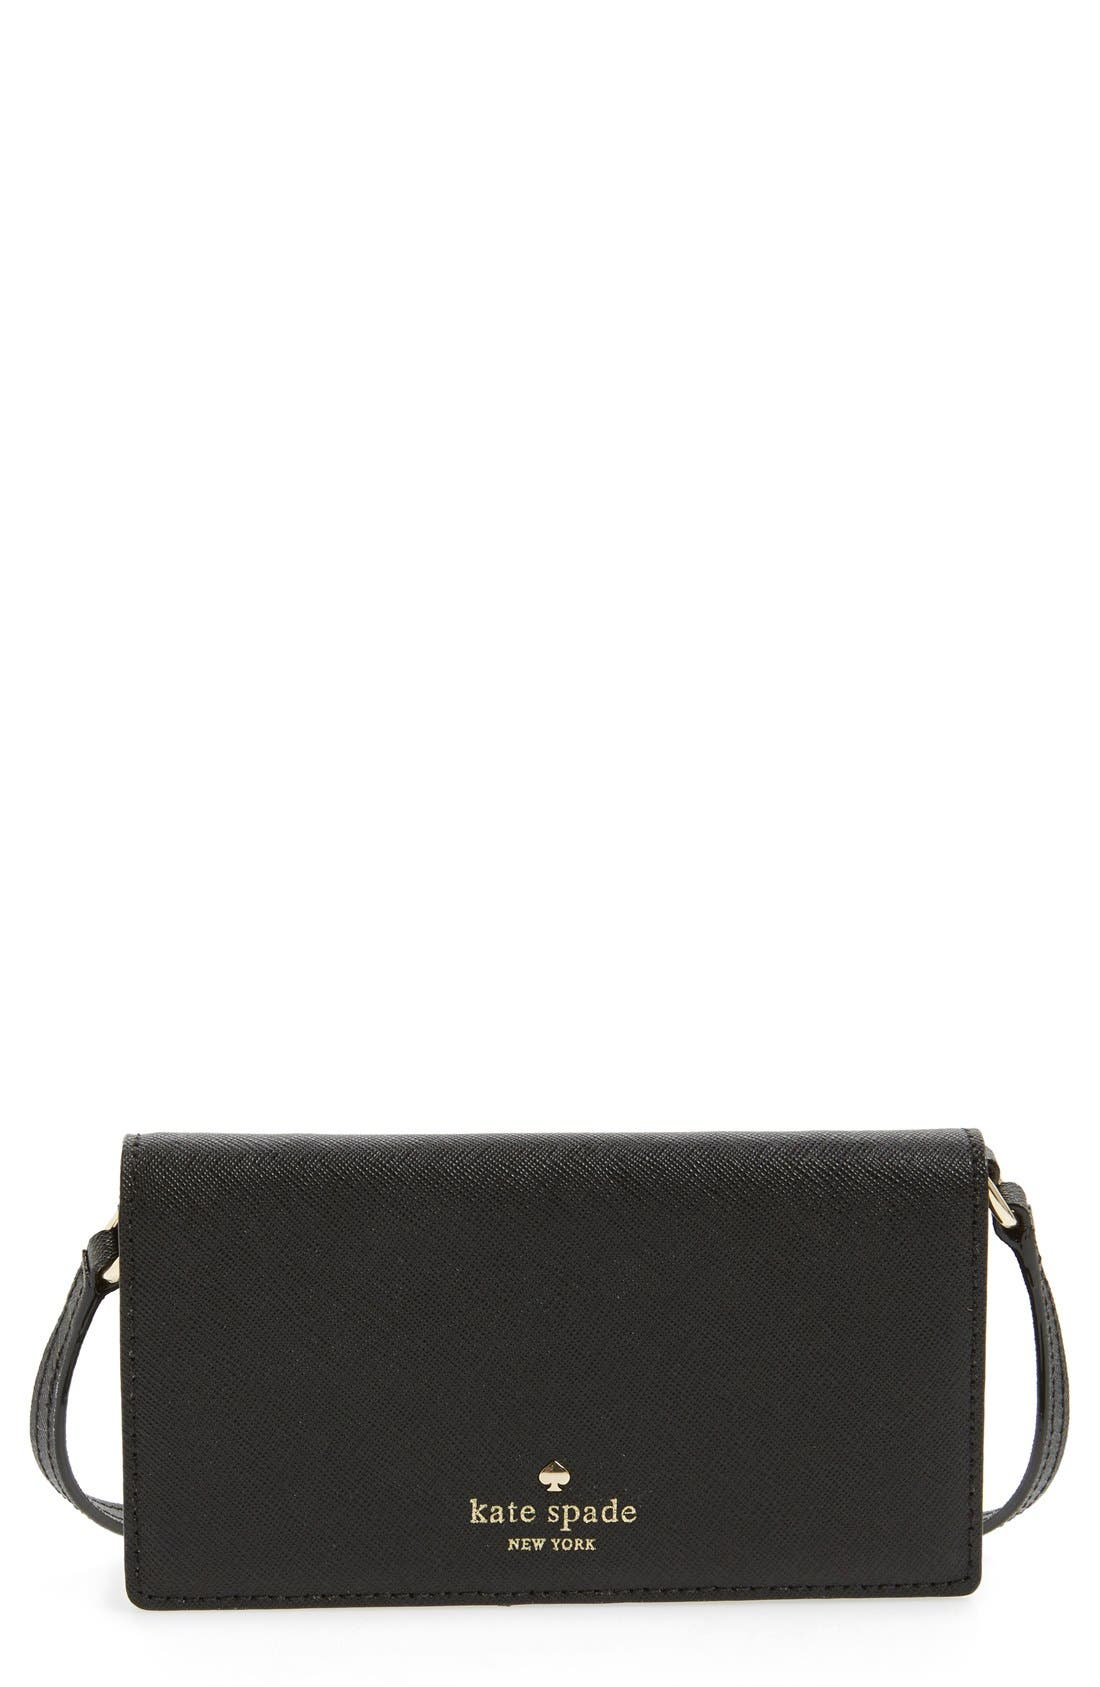 Main Image - kate spade new york iPhone 6 & 6s leather crossbody wallet